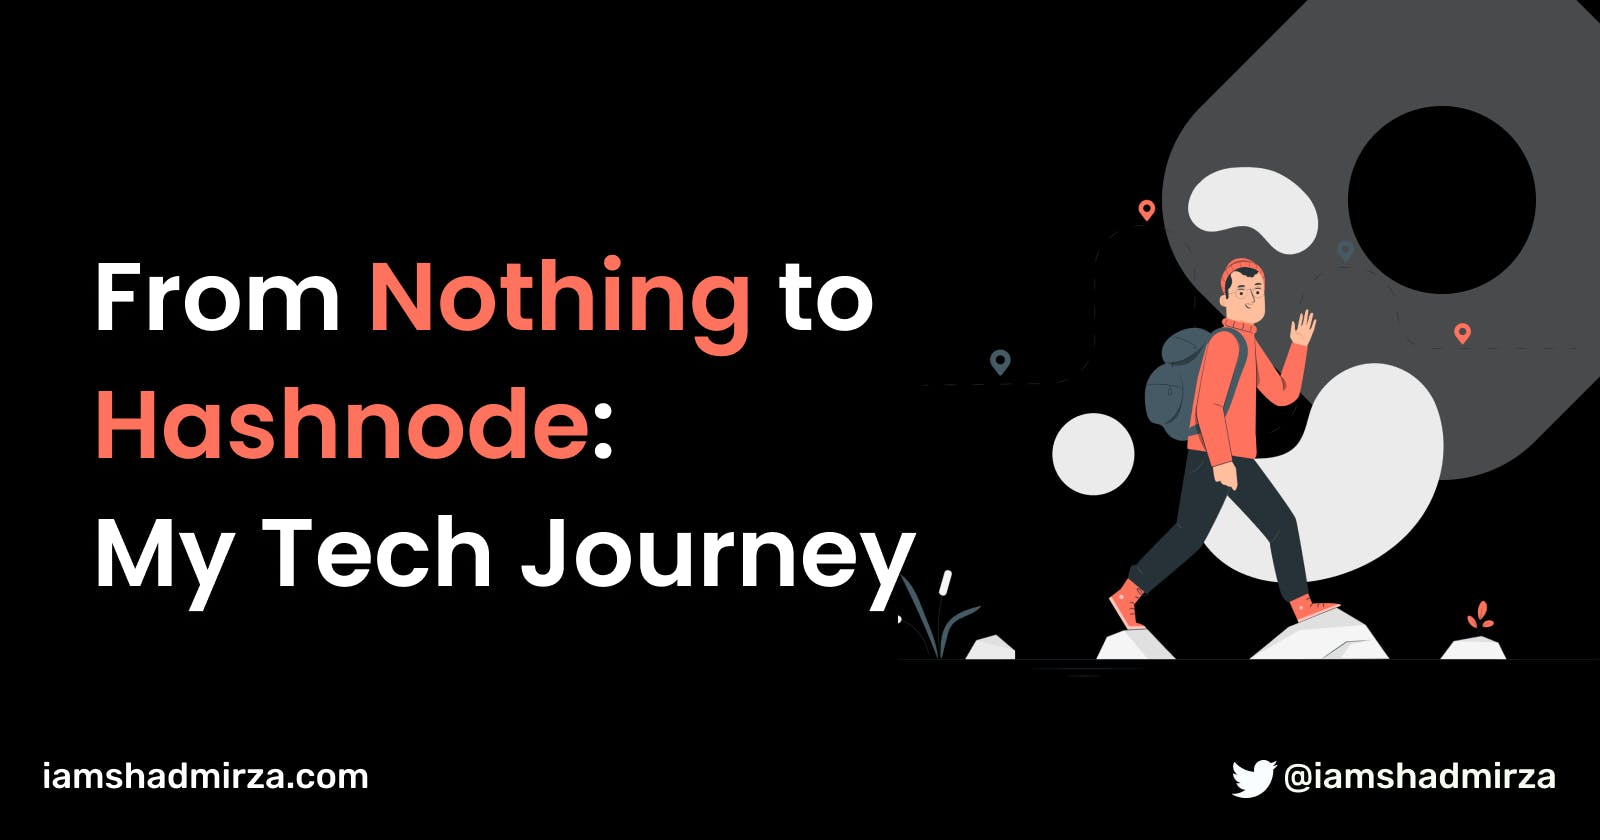 From Nothing to Hashnode: My Tech Journey